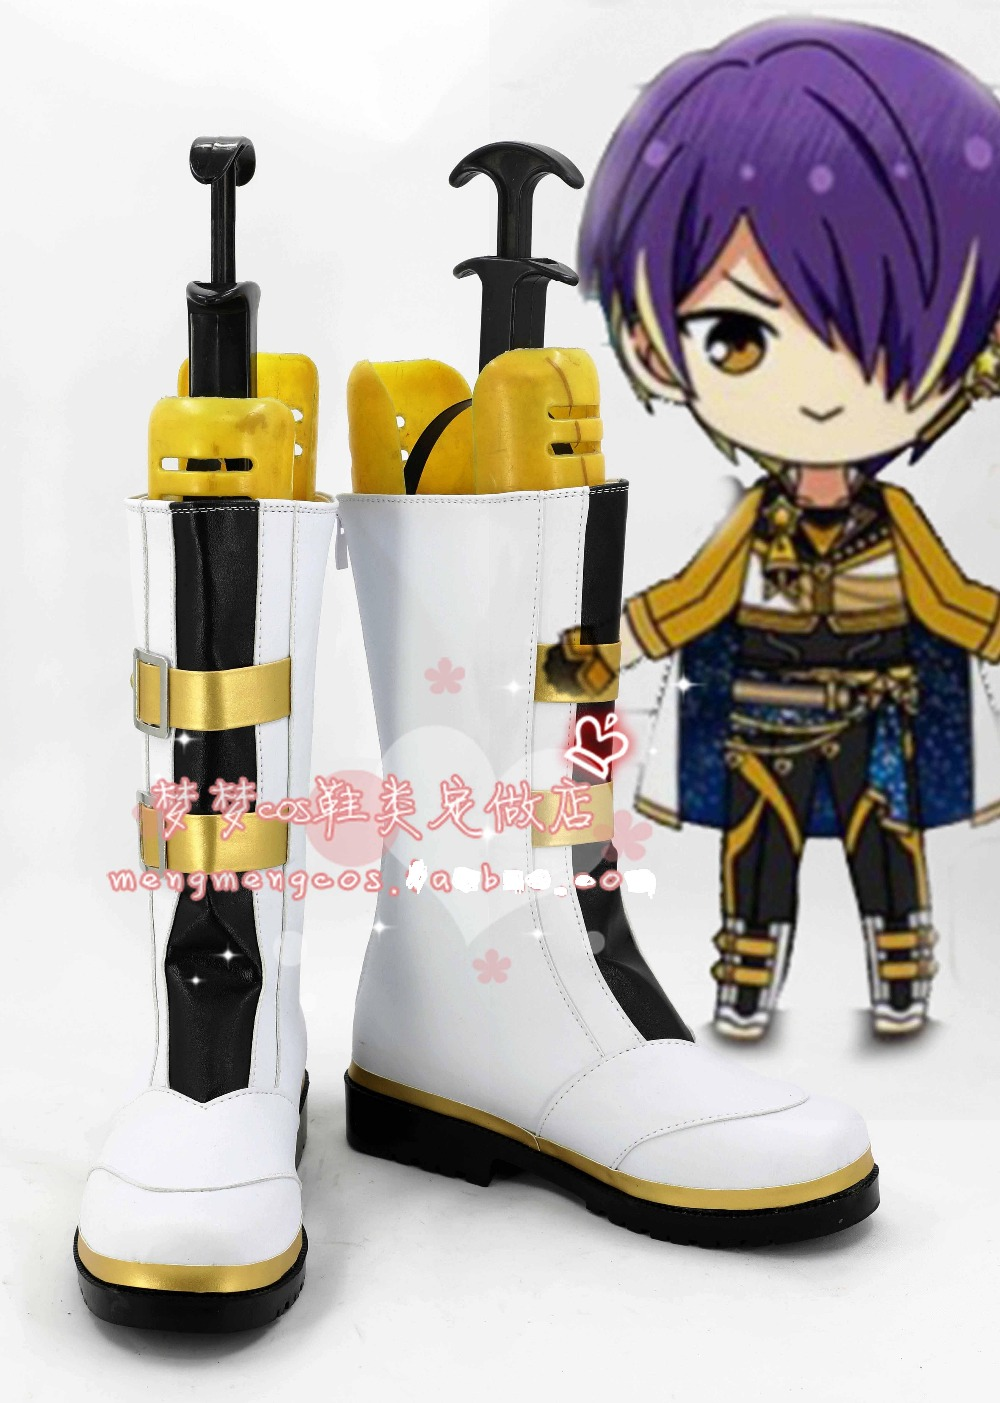 Anime Ensemble Stars Shoes Morisawa Chiaki Cosplay Boots Halloween Carnival Shoes